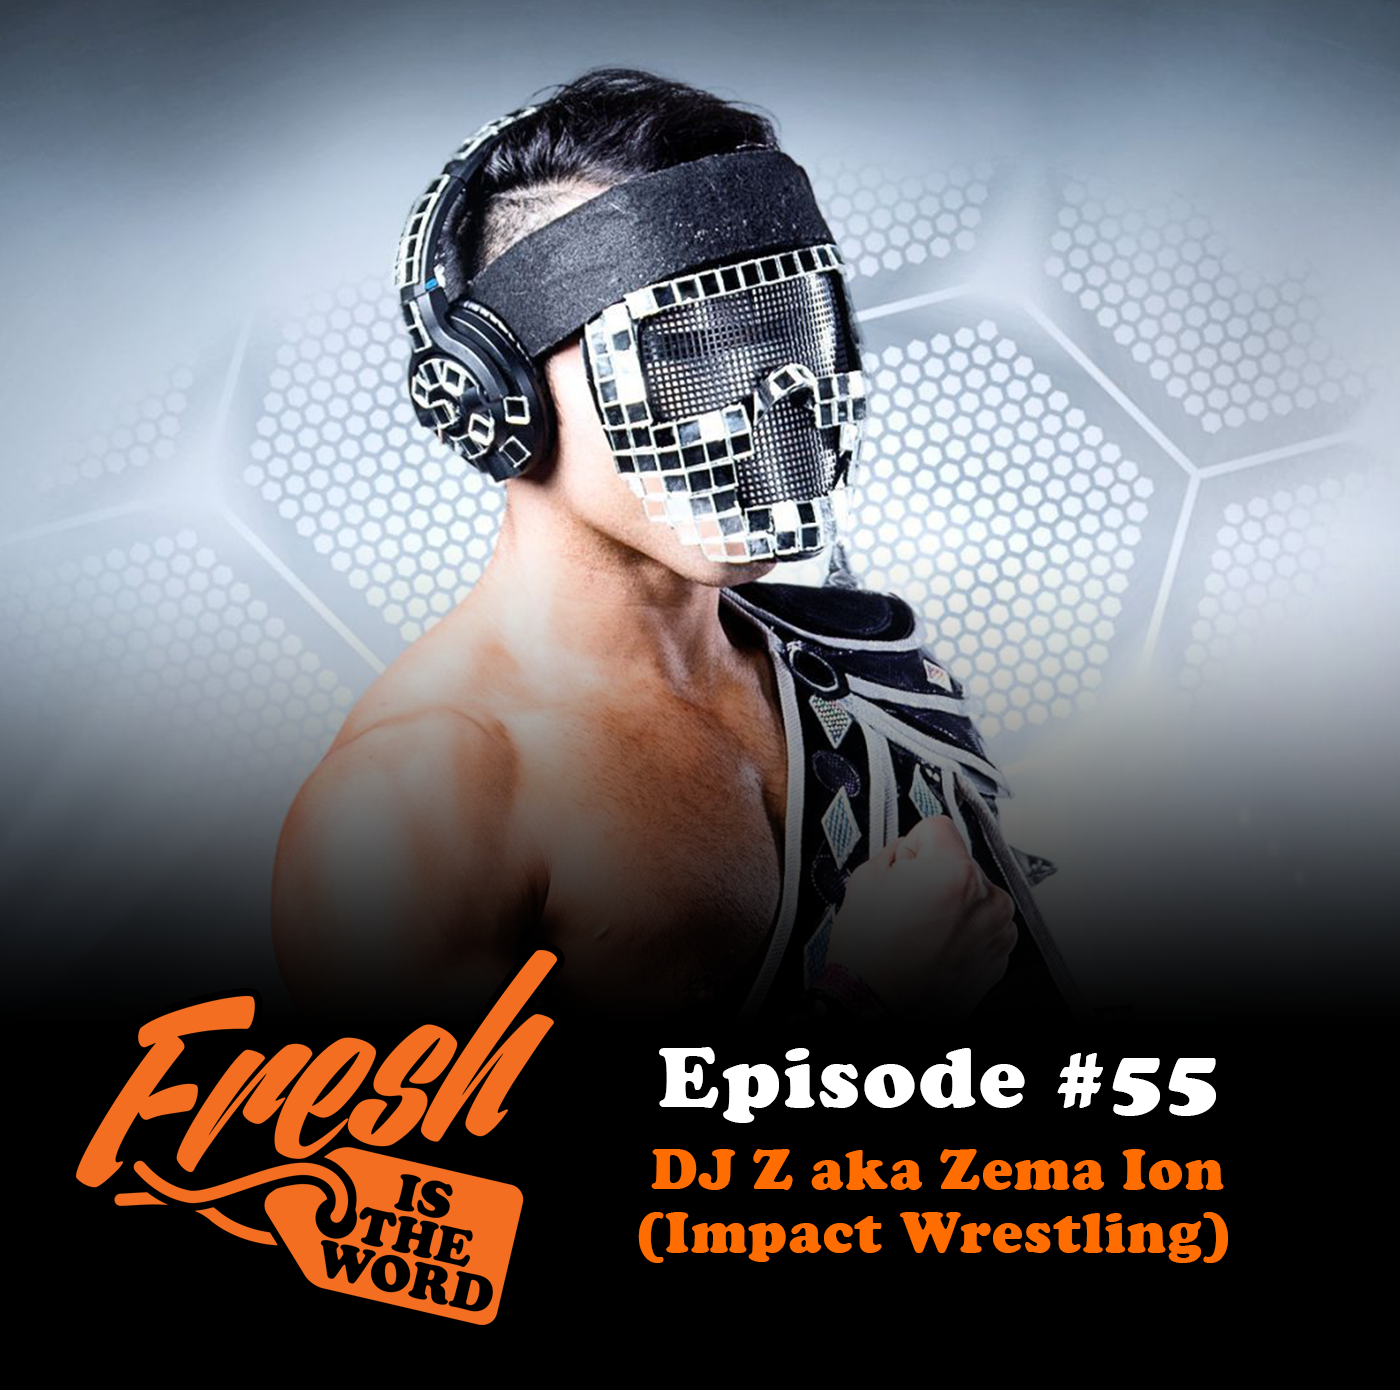 Episode #55: DJ Z aka Zema Ion (Impact Wrestling) by Fresh